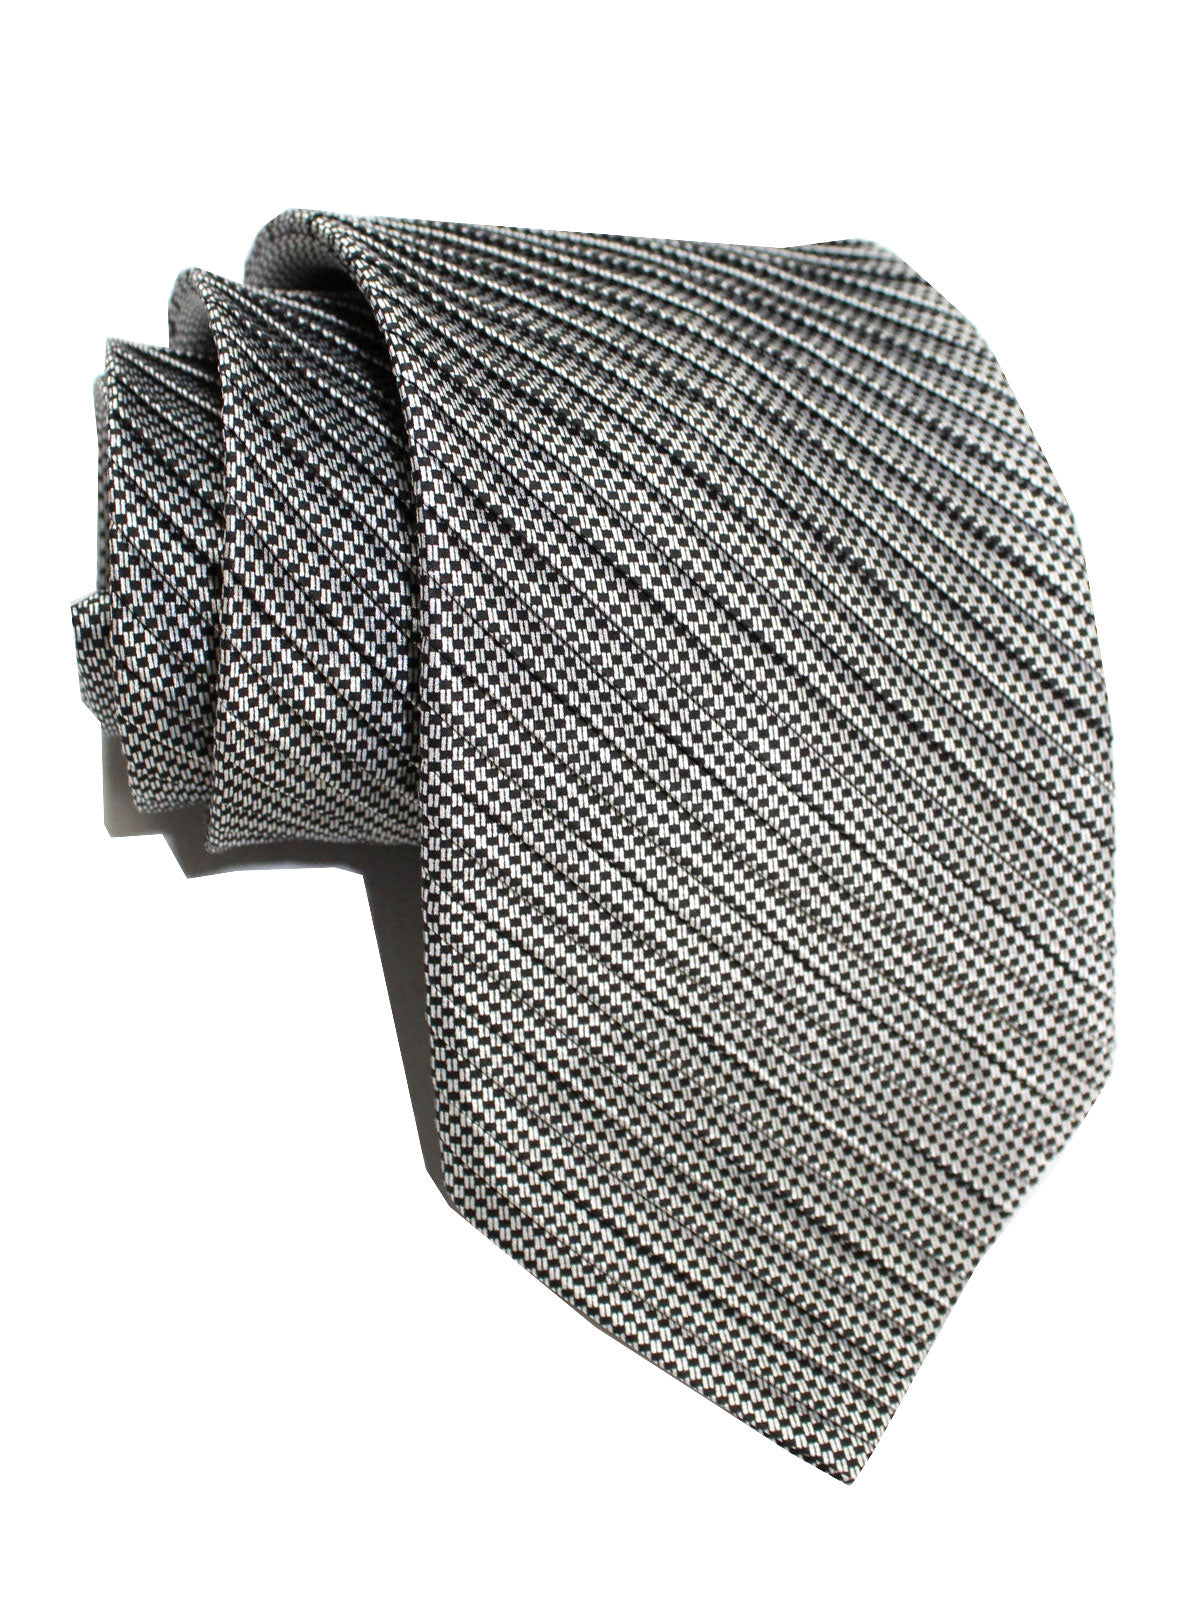 Stefano Ricci Pleated Silk Tie Black Silver Squares Design